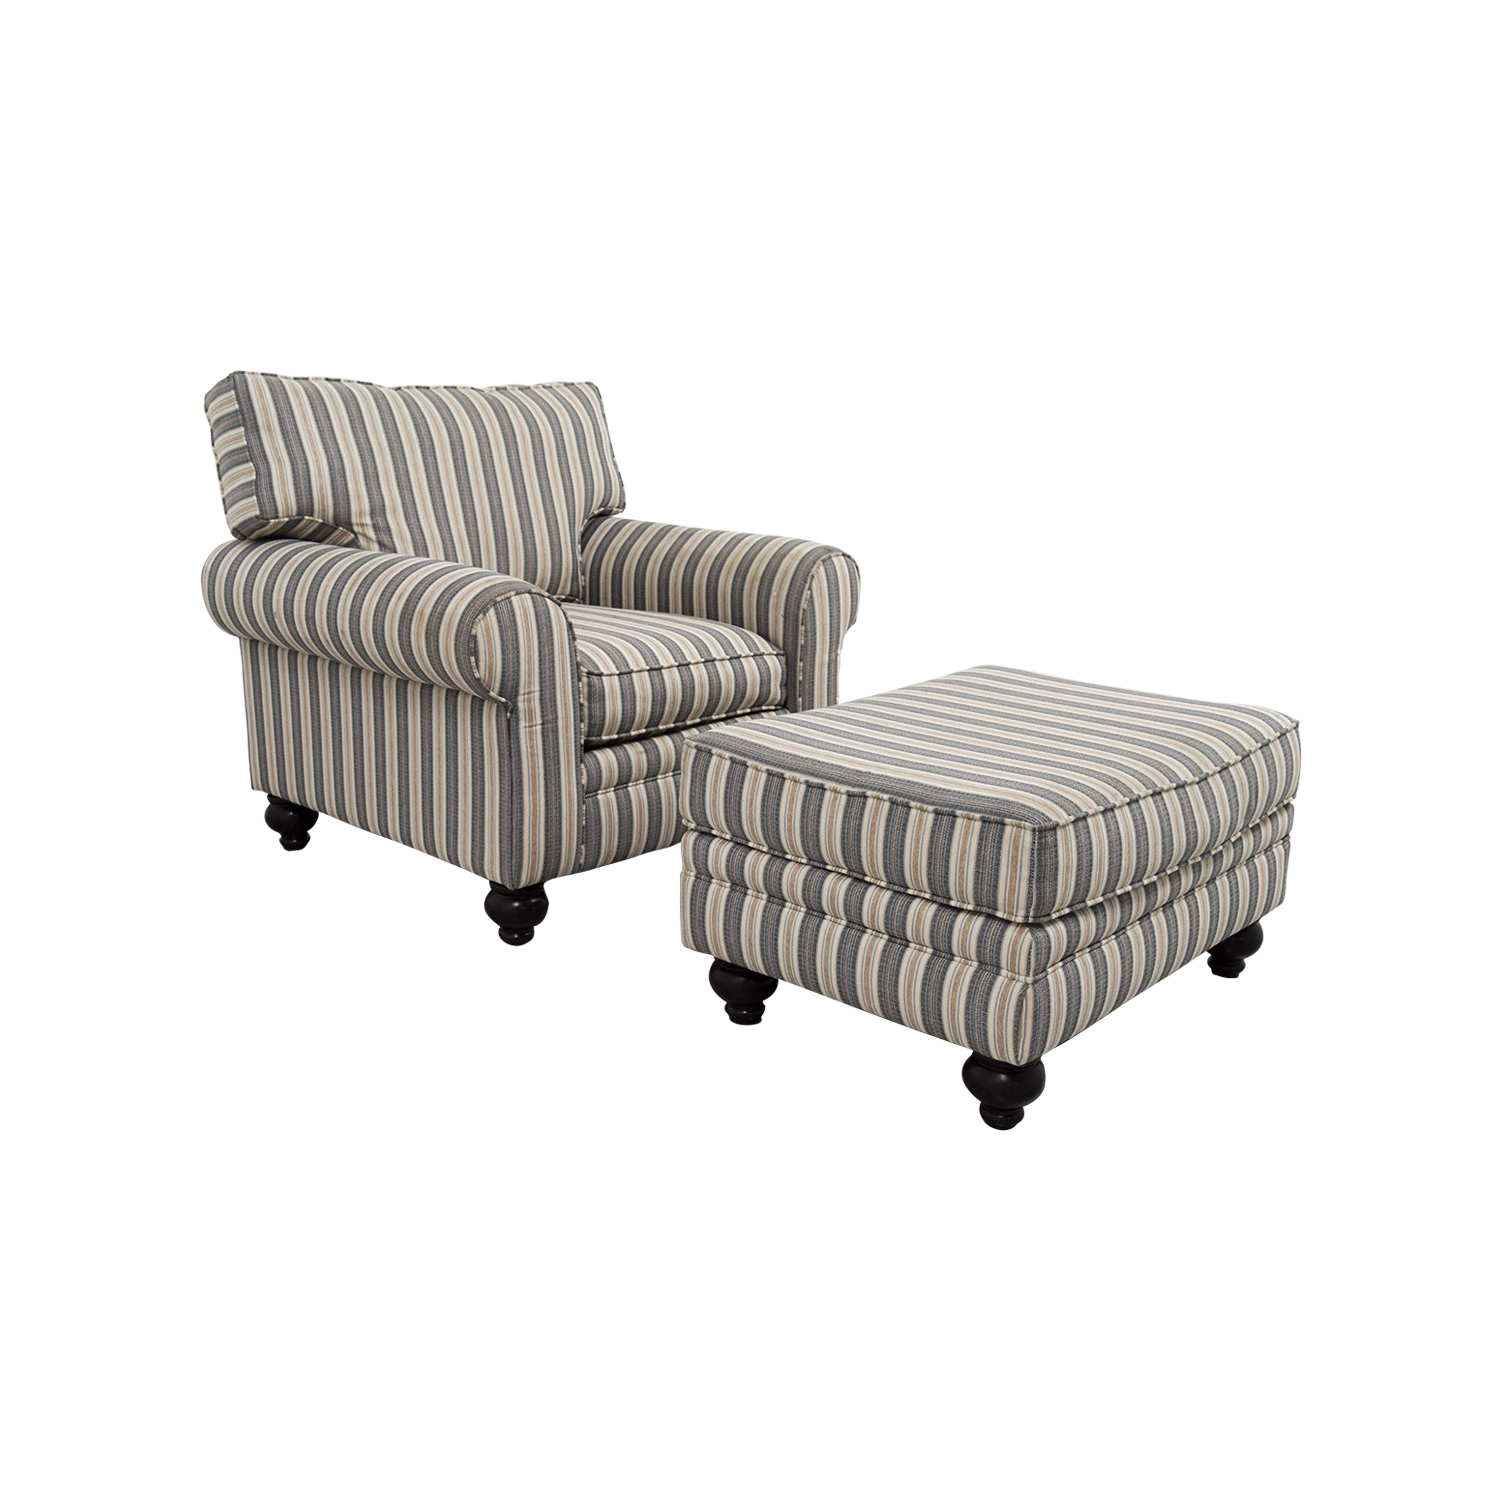 90 OFF  Bobs Furniture Bobs Furniture Sofa Chair with